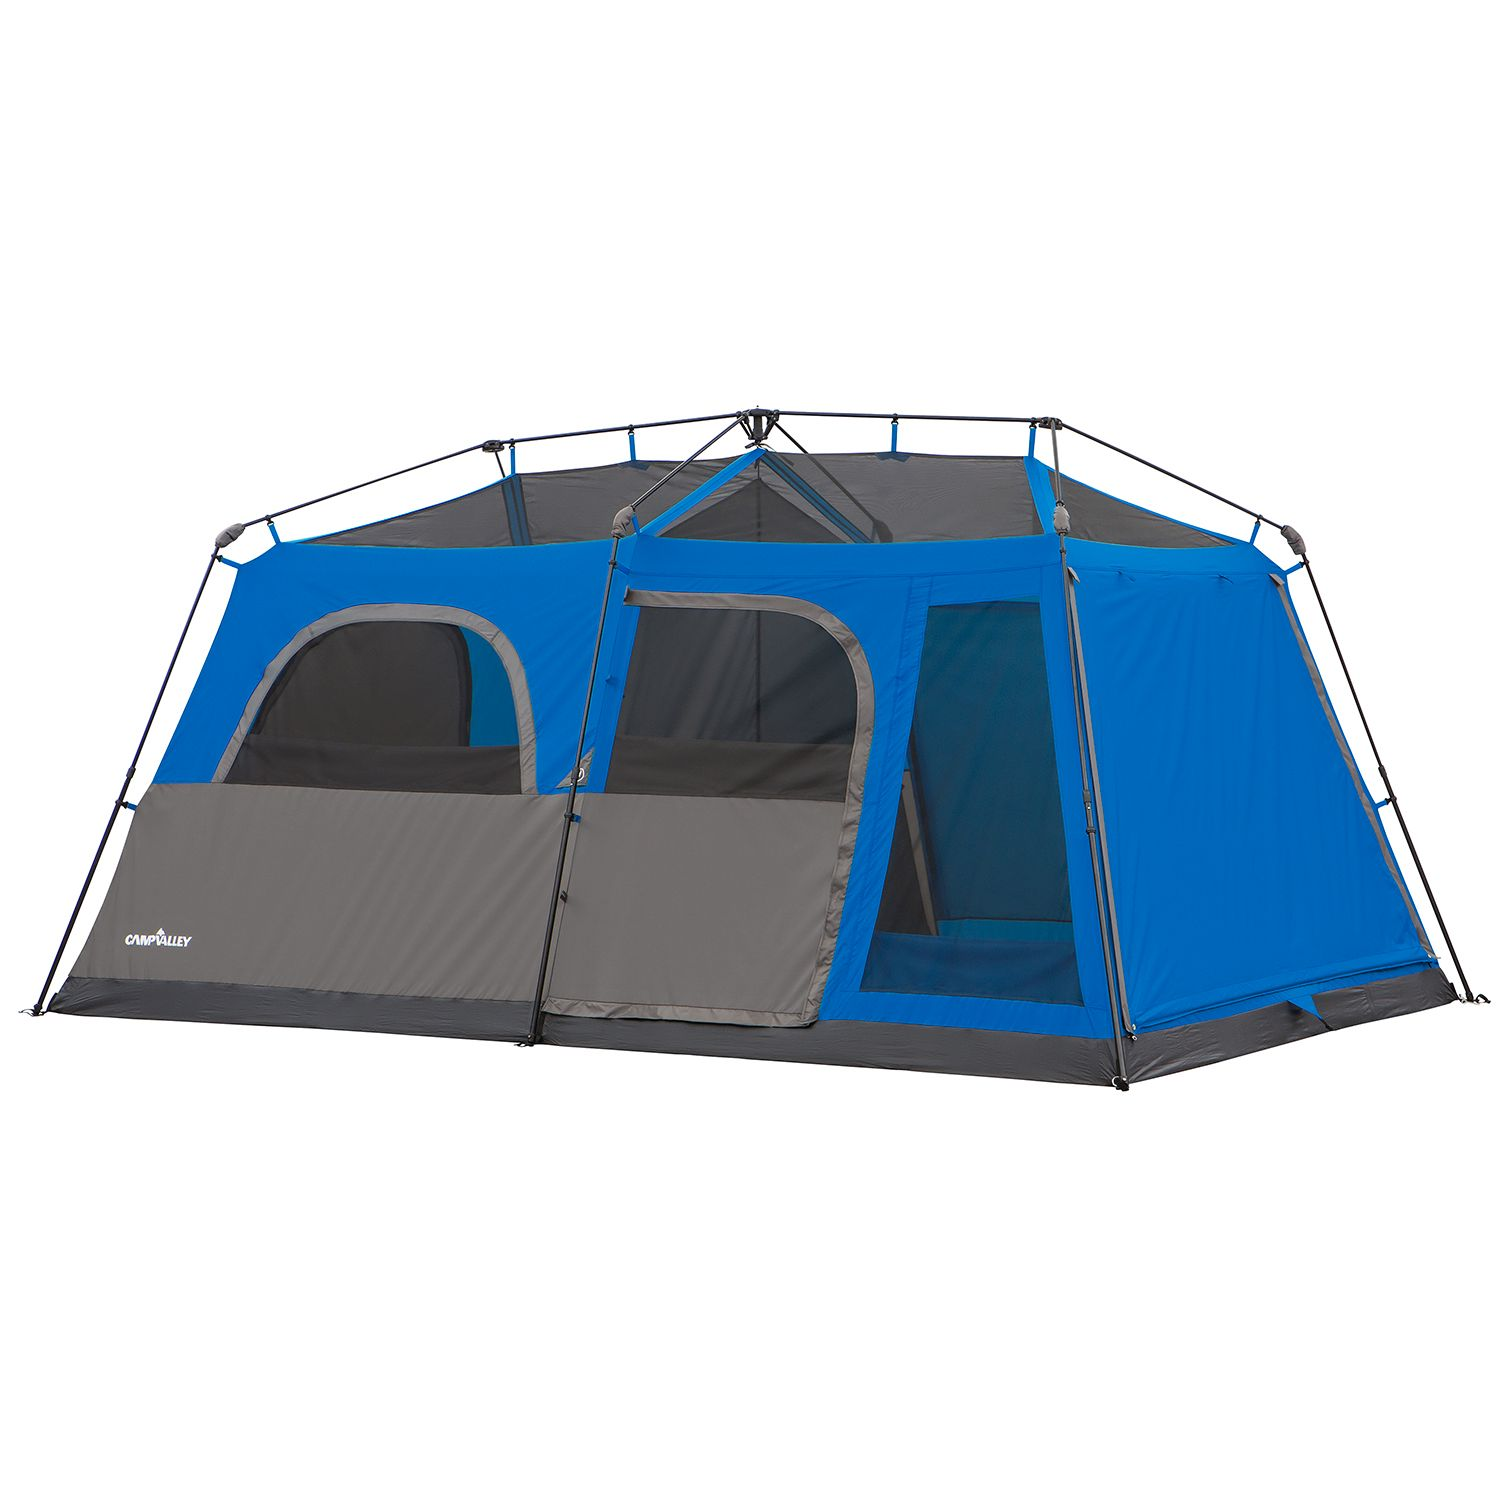 campvalley 9 person instant cabin tent 14 quot l x 9 w x 6 6 88883